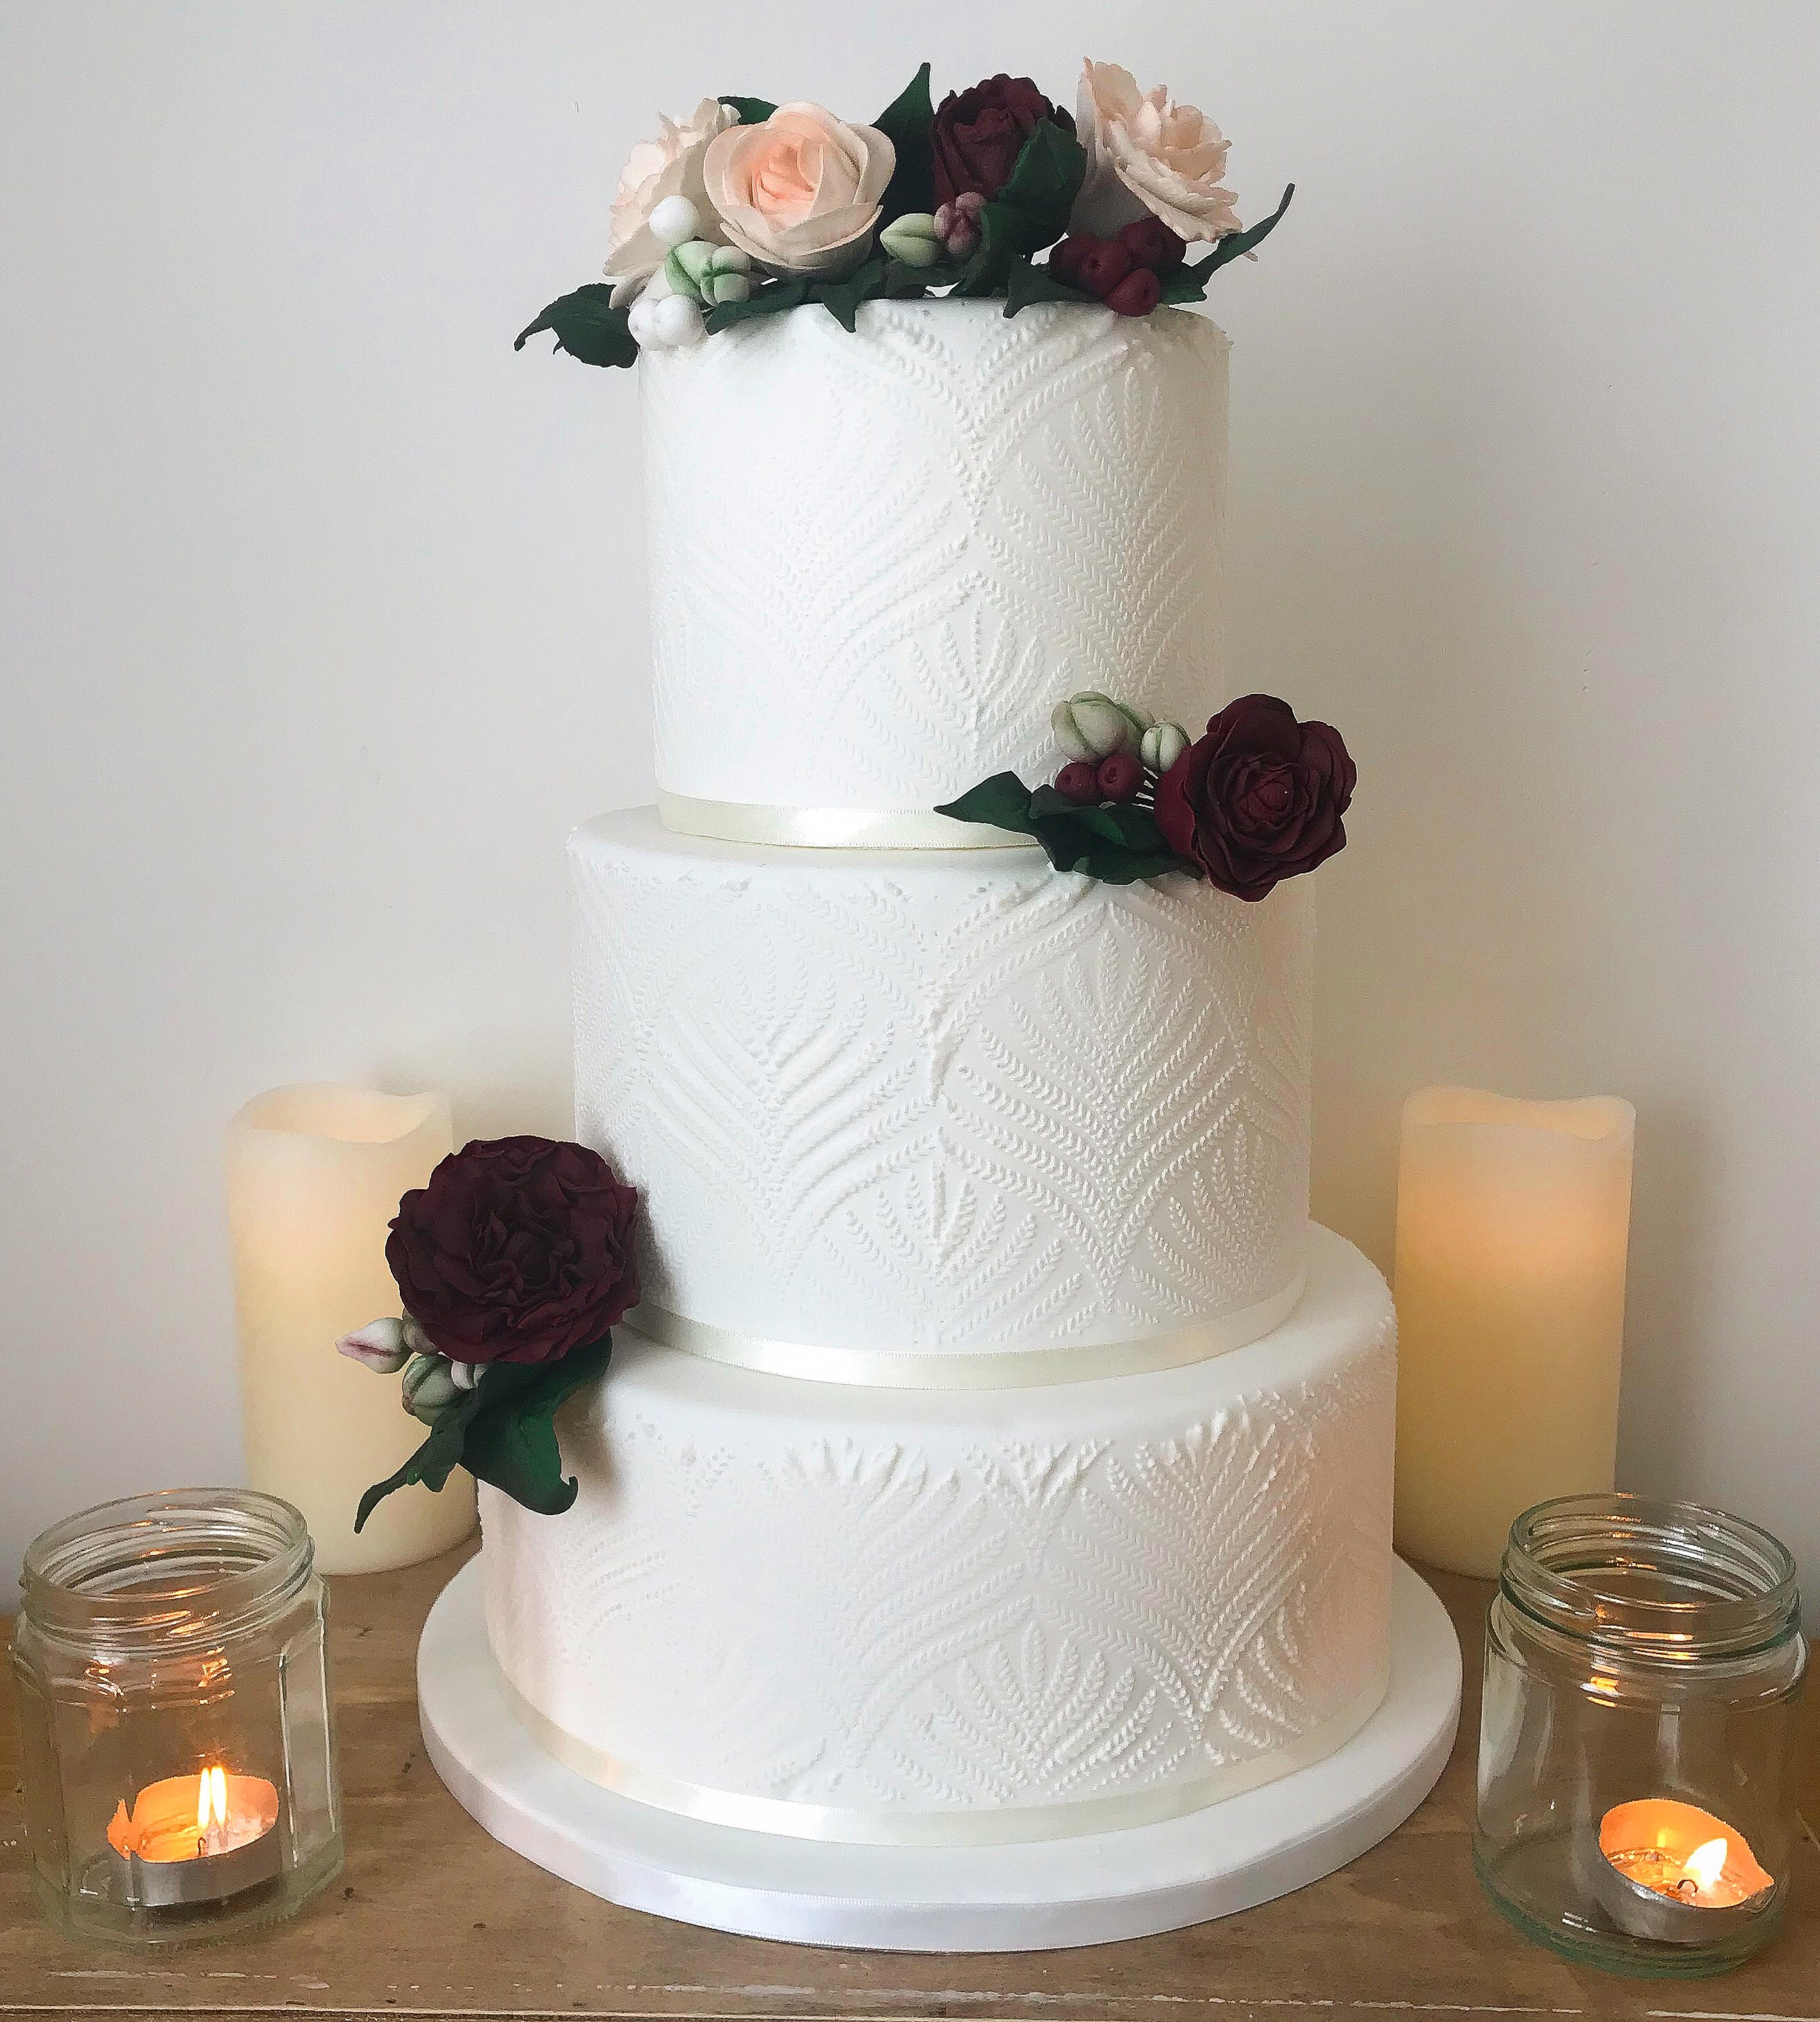 White royal iced stencil wedding cake